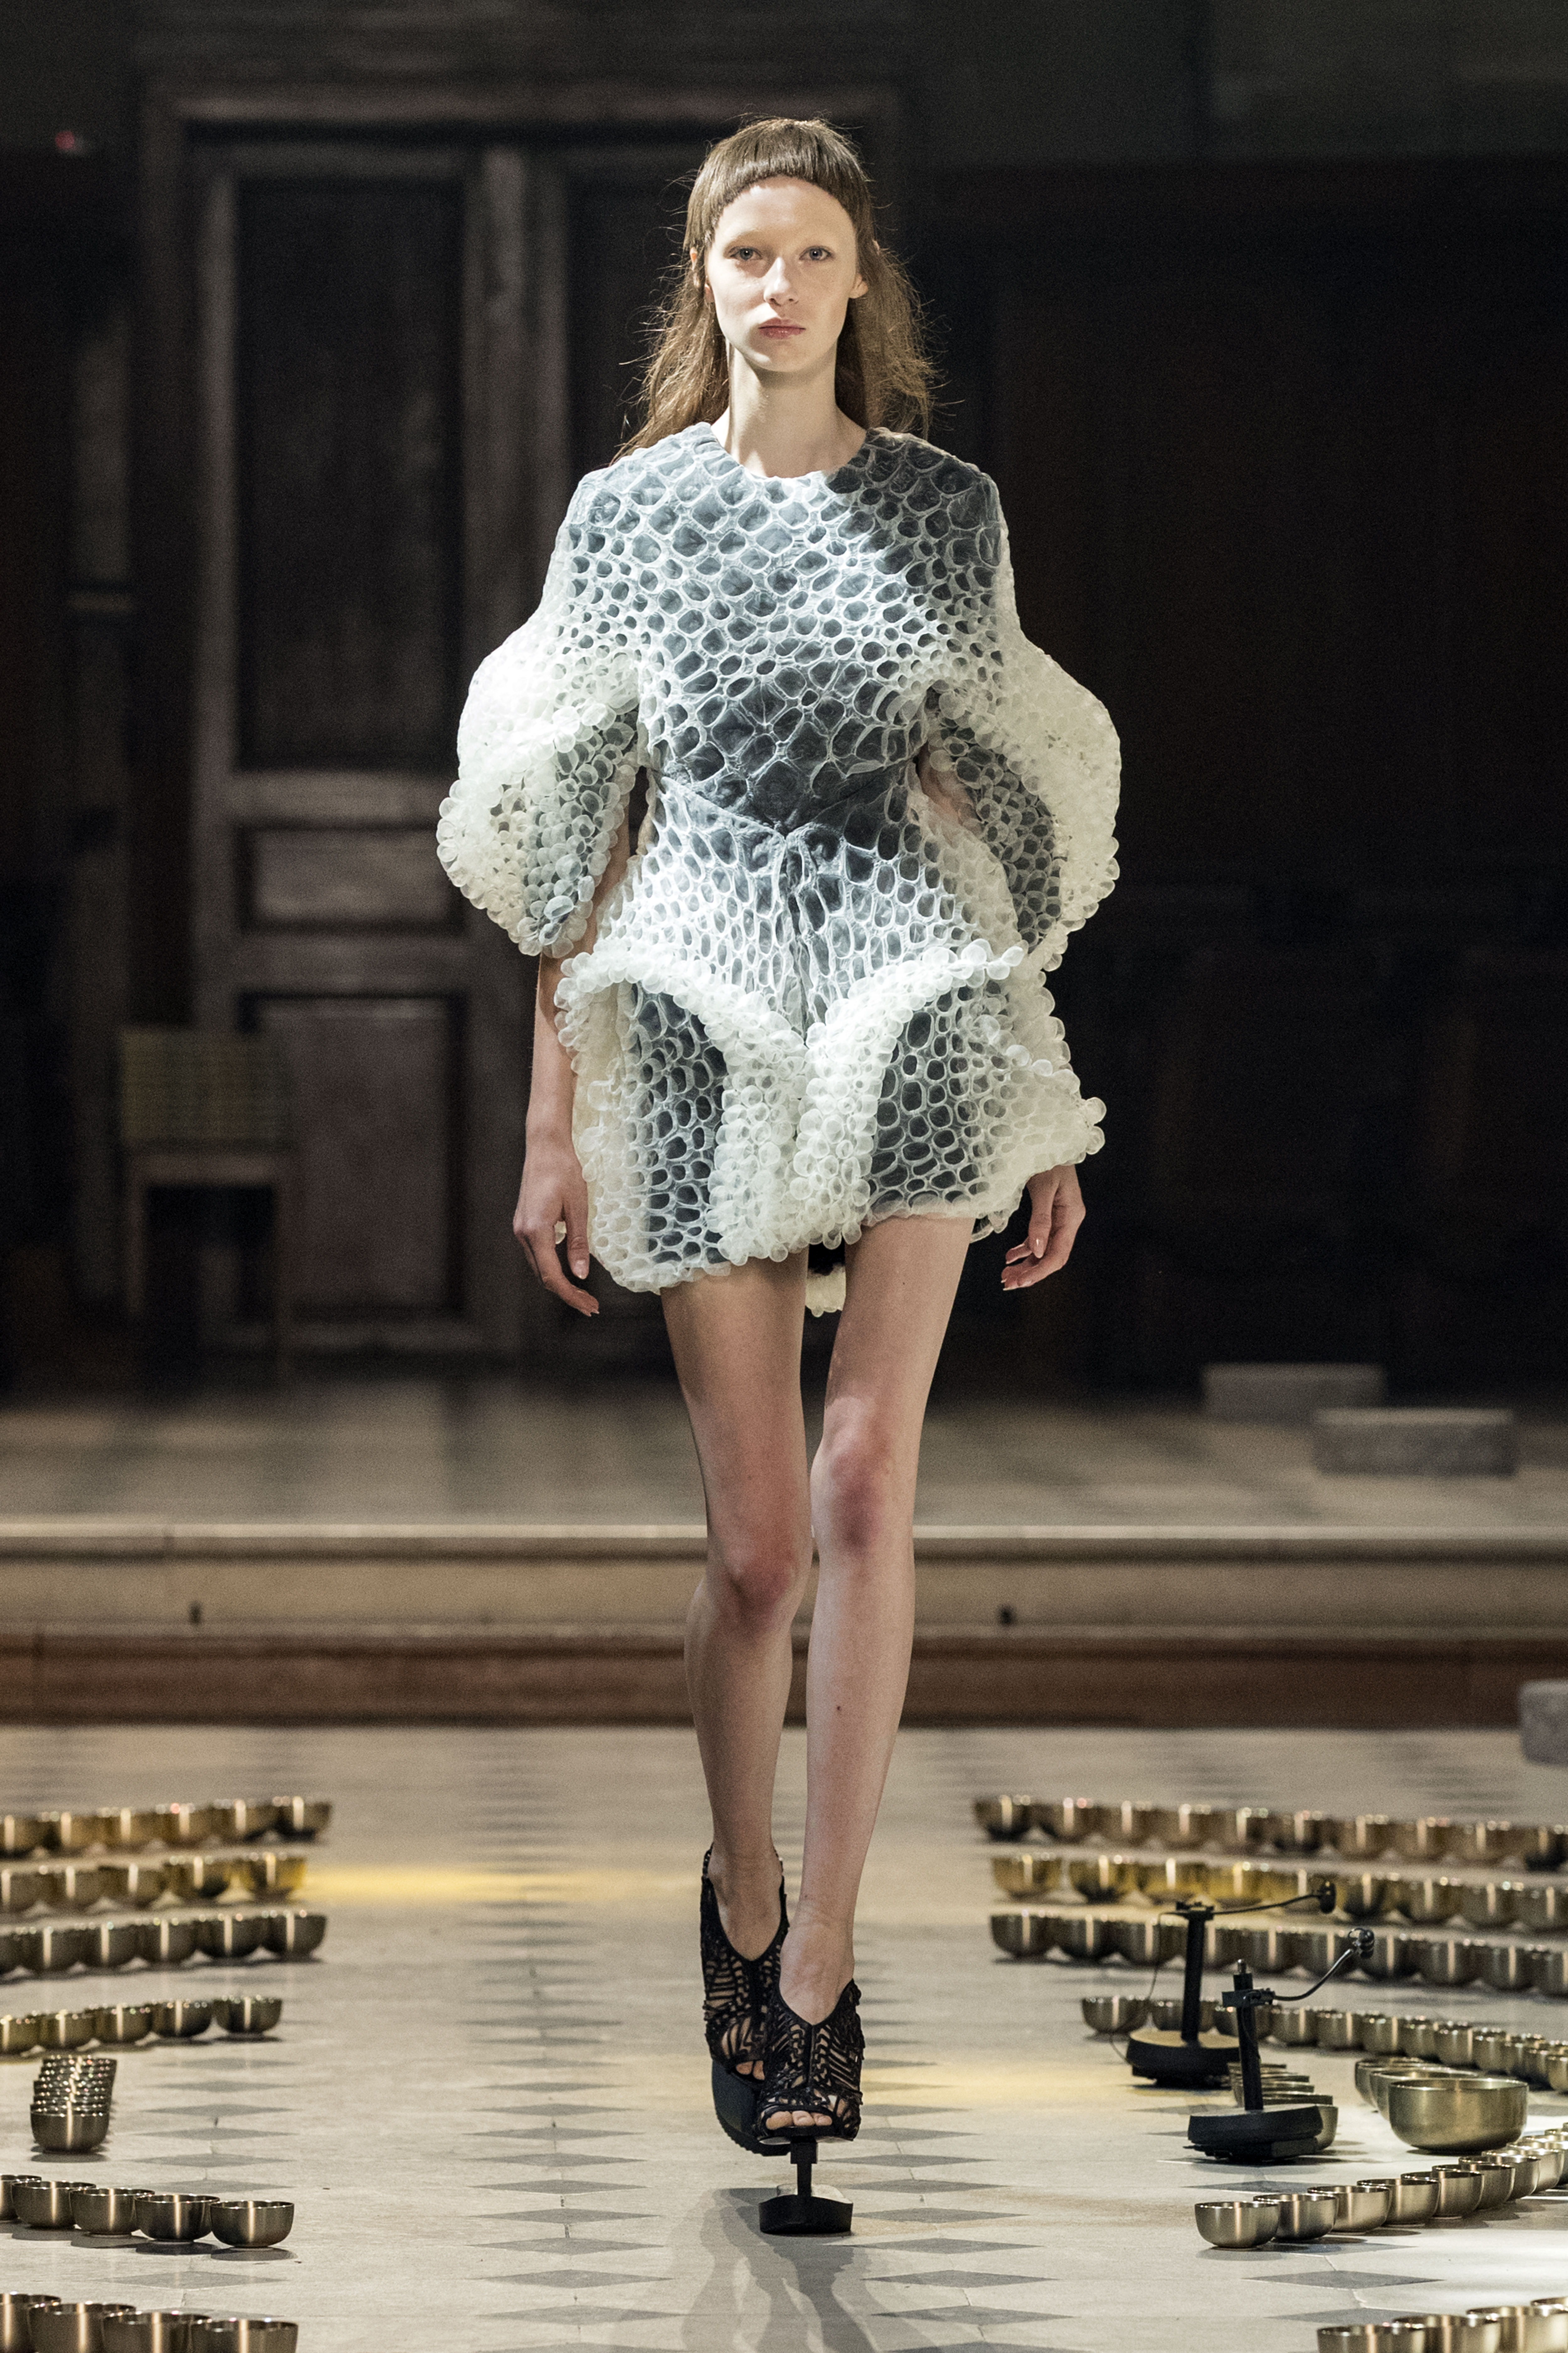 A model presents a creation from the Fall/Winter 2016/2017 Haute Couture collection by Dutch designer Iris Van Herpen during the Paris Fashion Week, in Paris, France, 04 July 2016. The presentation of the Haute Couture collections runs from 03 to 07 July. EPA/ETIENNE LAURENT